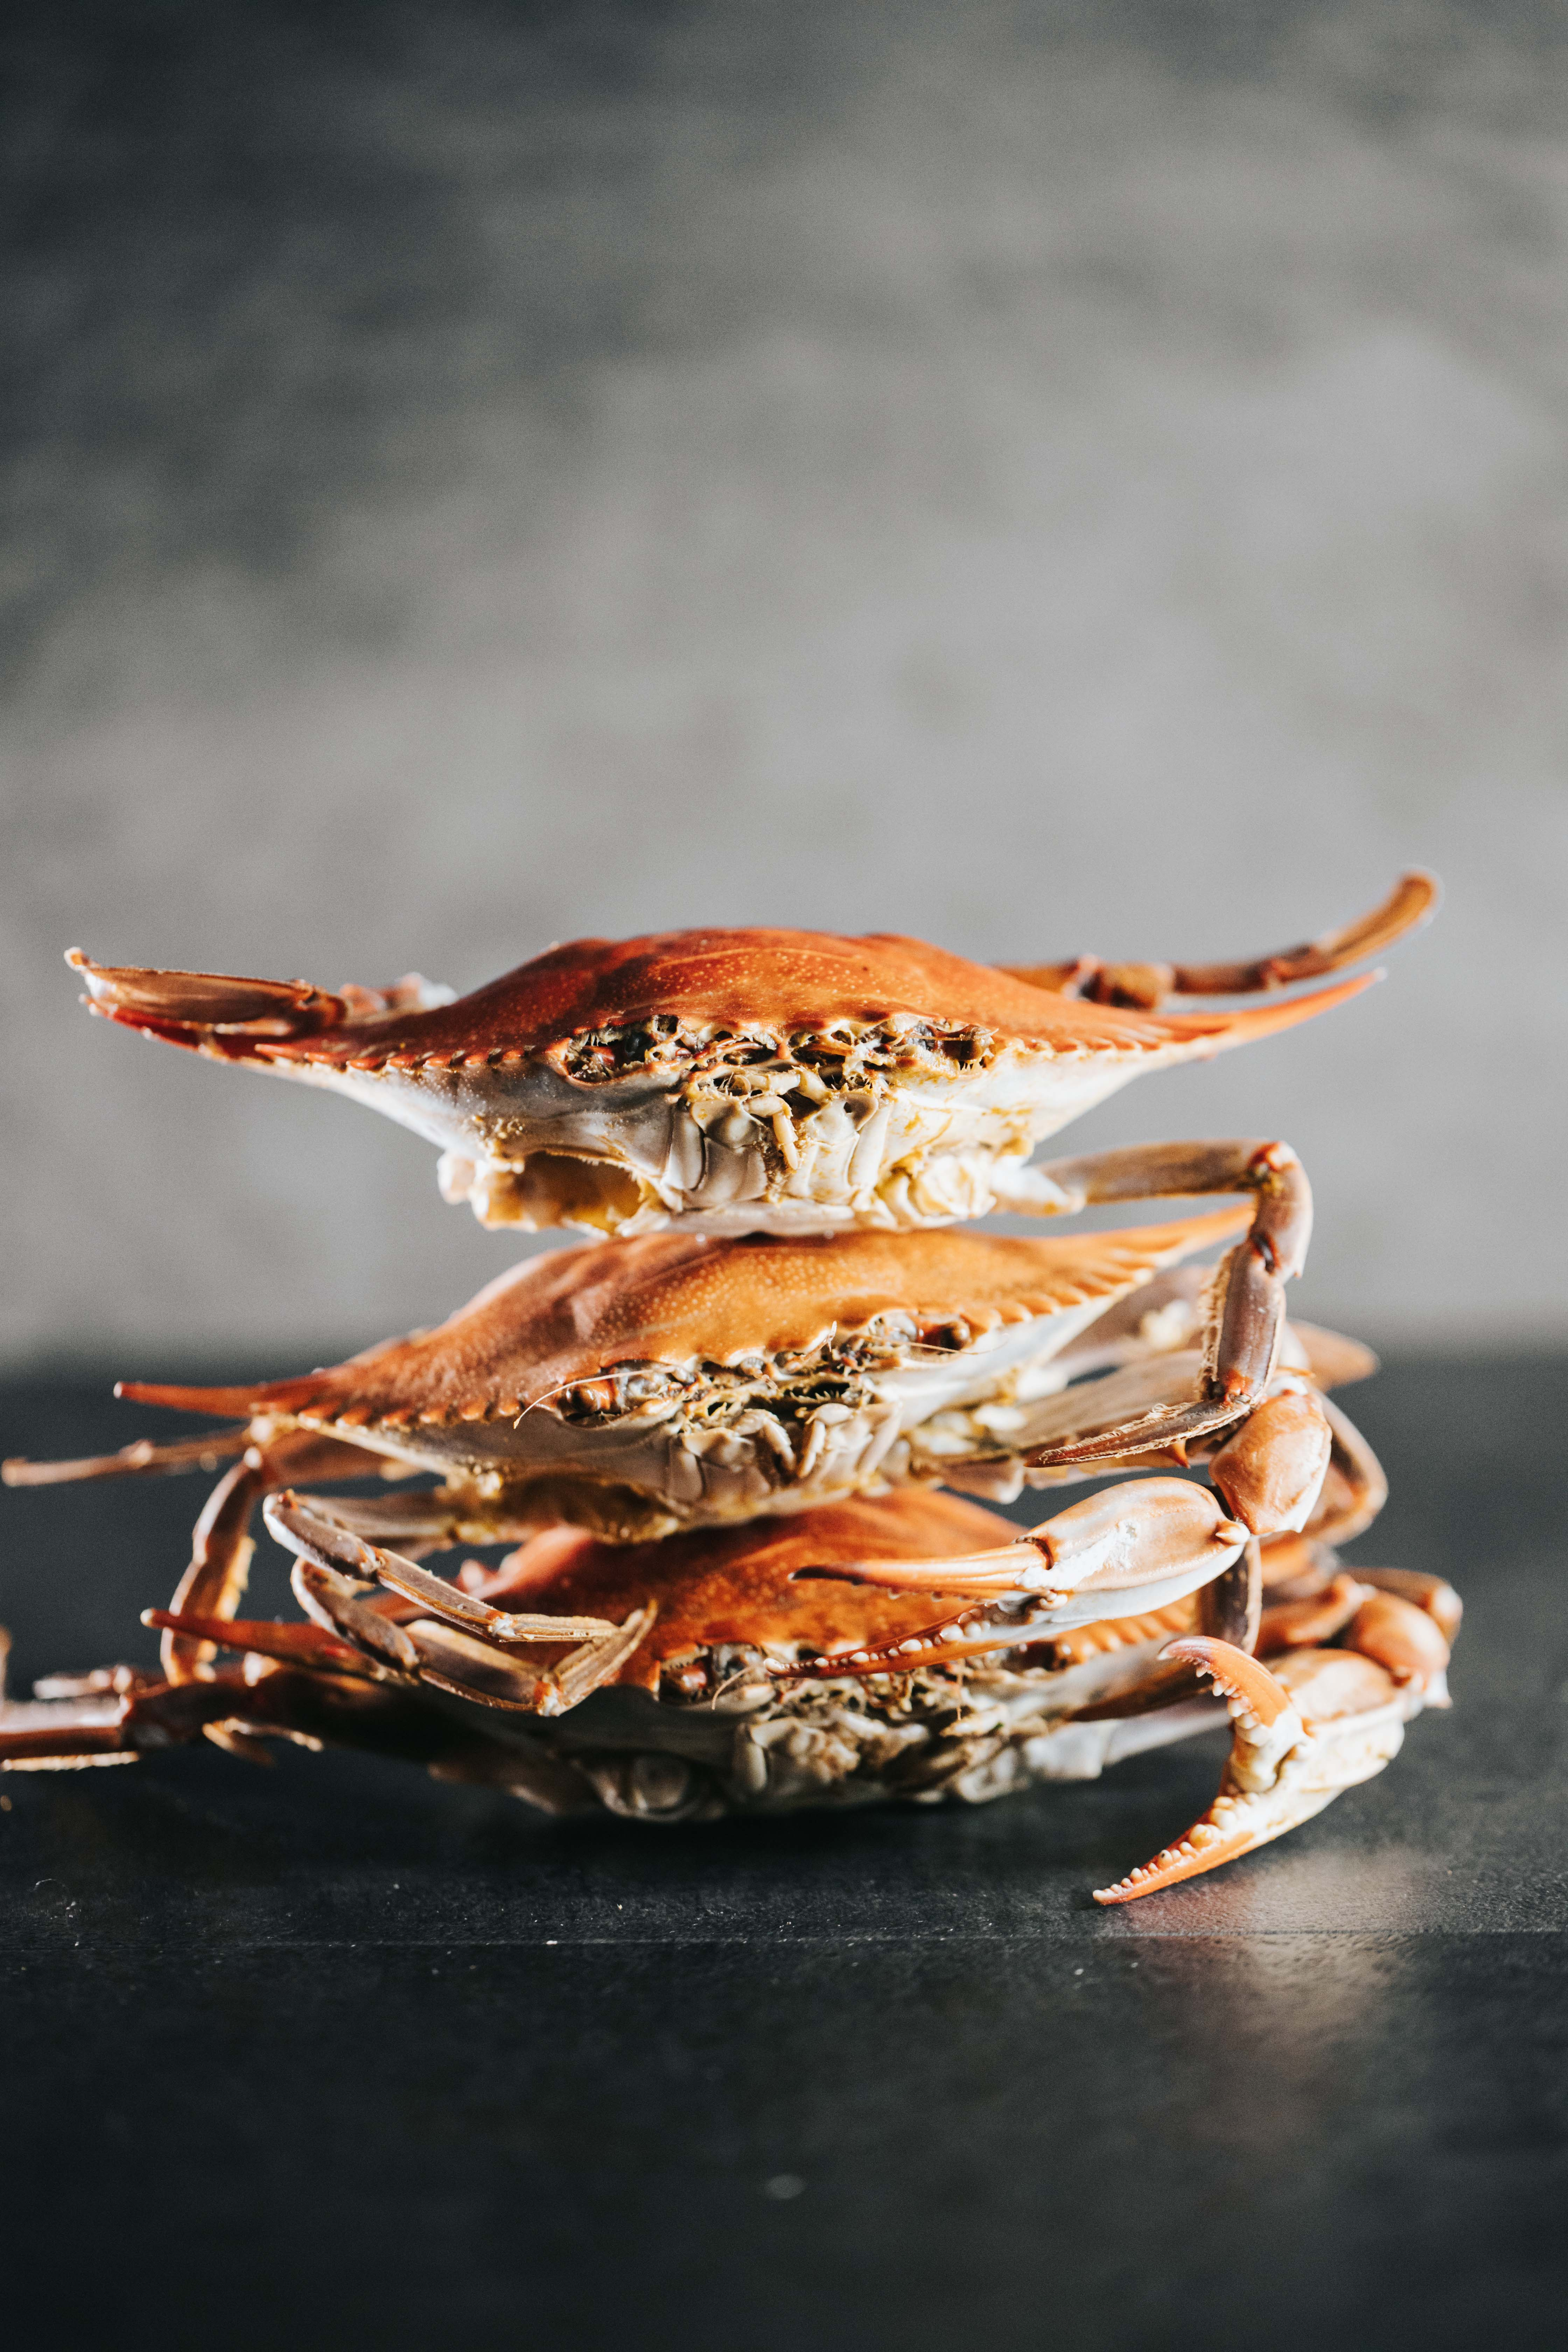 Recipe: Sauce up your crabs the easy way with Marion's